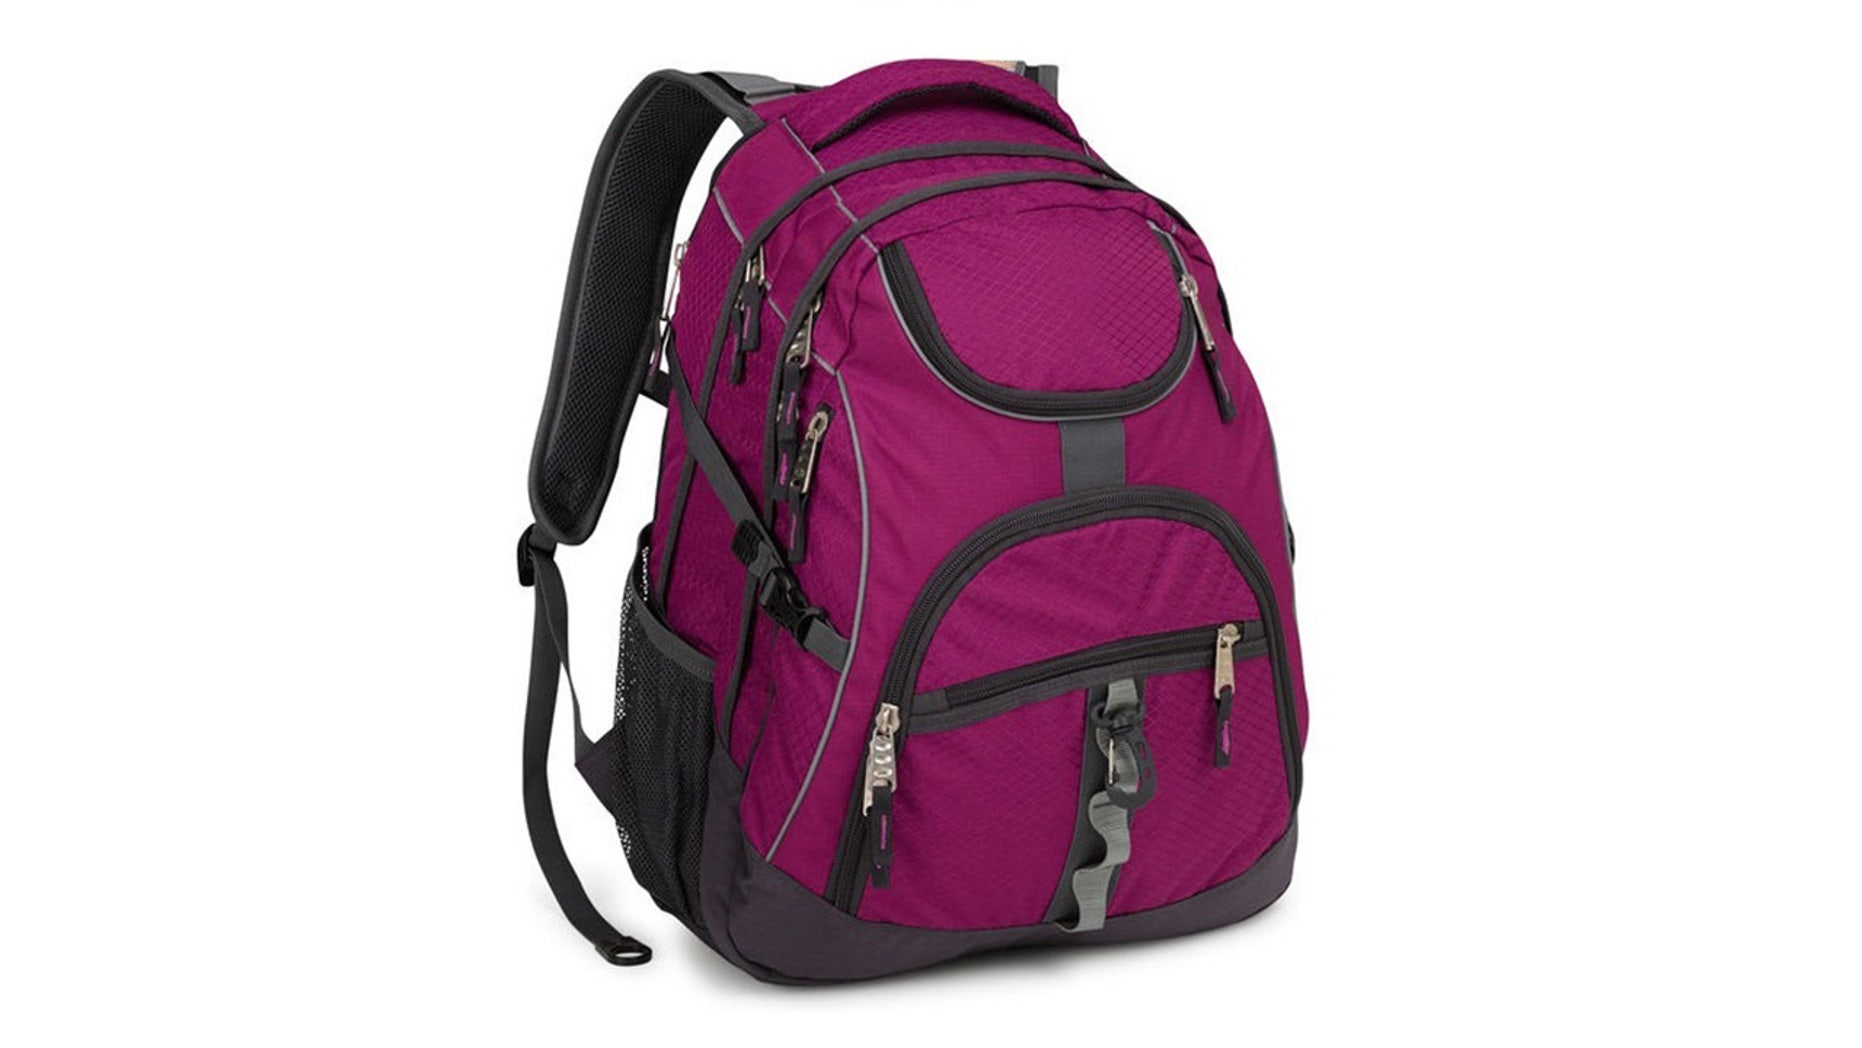 1f0bc481f81 Bulletproof backpack sales have increased 30 percent since Wednesday s  school shooting says one manufacturer.